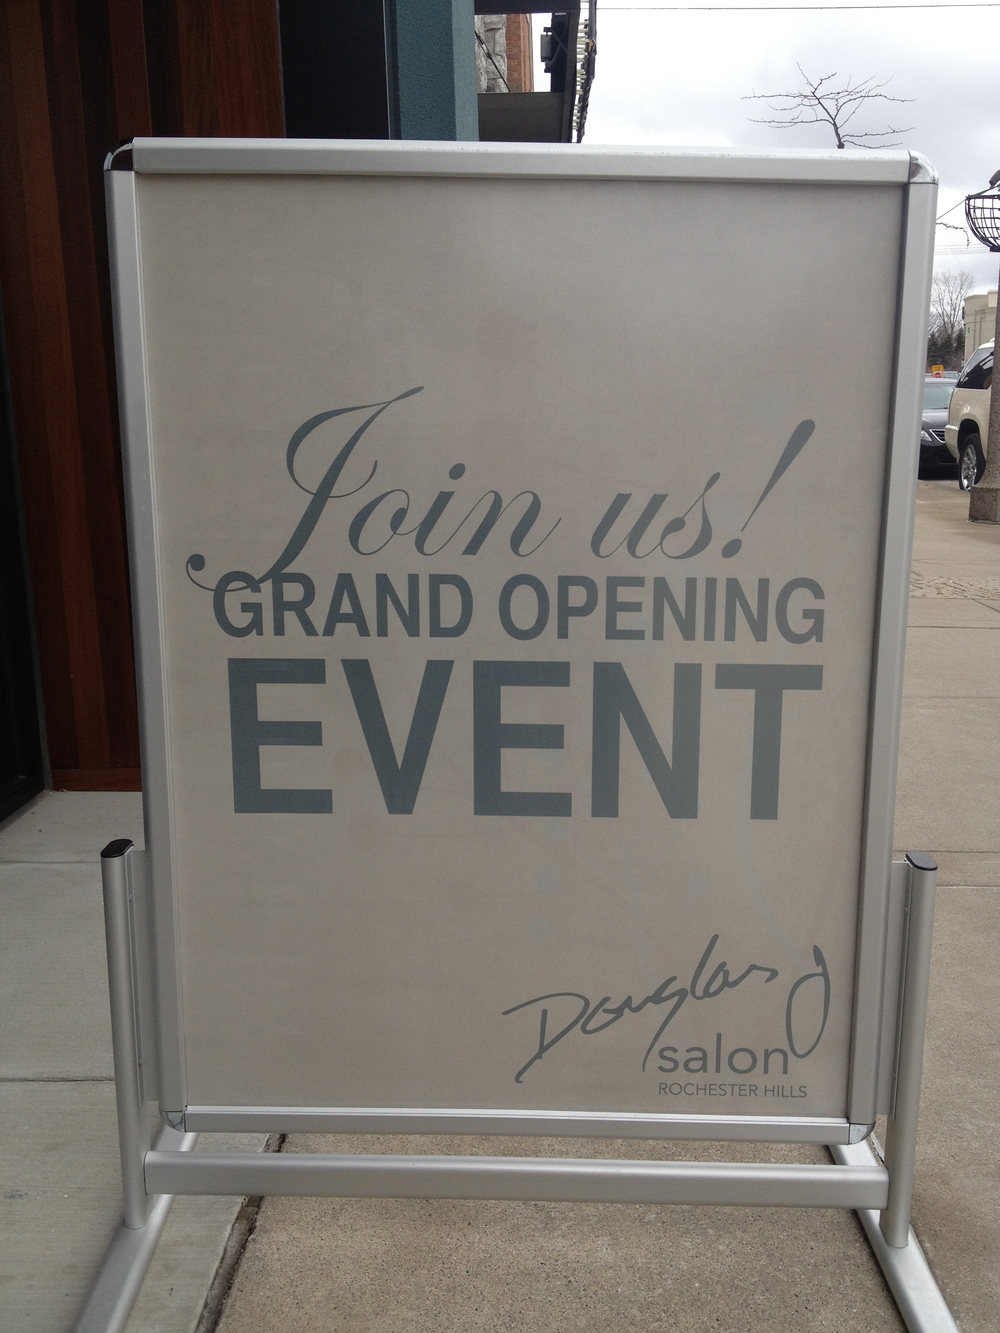 Douglas J  is a growing company based in East Lansing, MI. Their last location to open operates in Rochester Hills. The 2013 Grand Opening Event was enjoyed by many guests, with food, live music, a ribbon cutting and complimentary services.